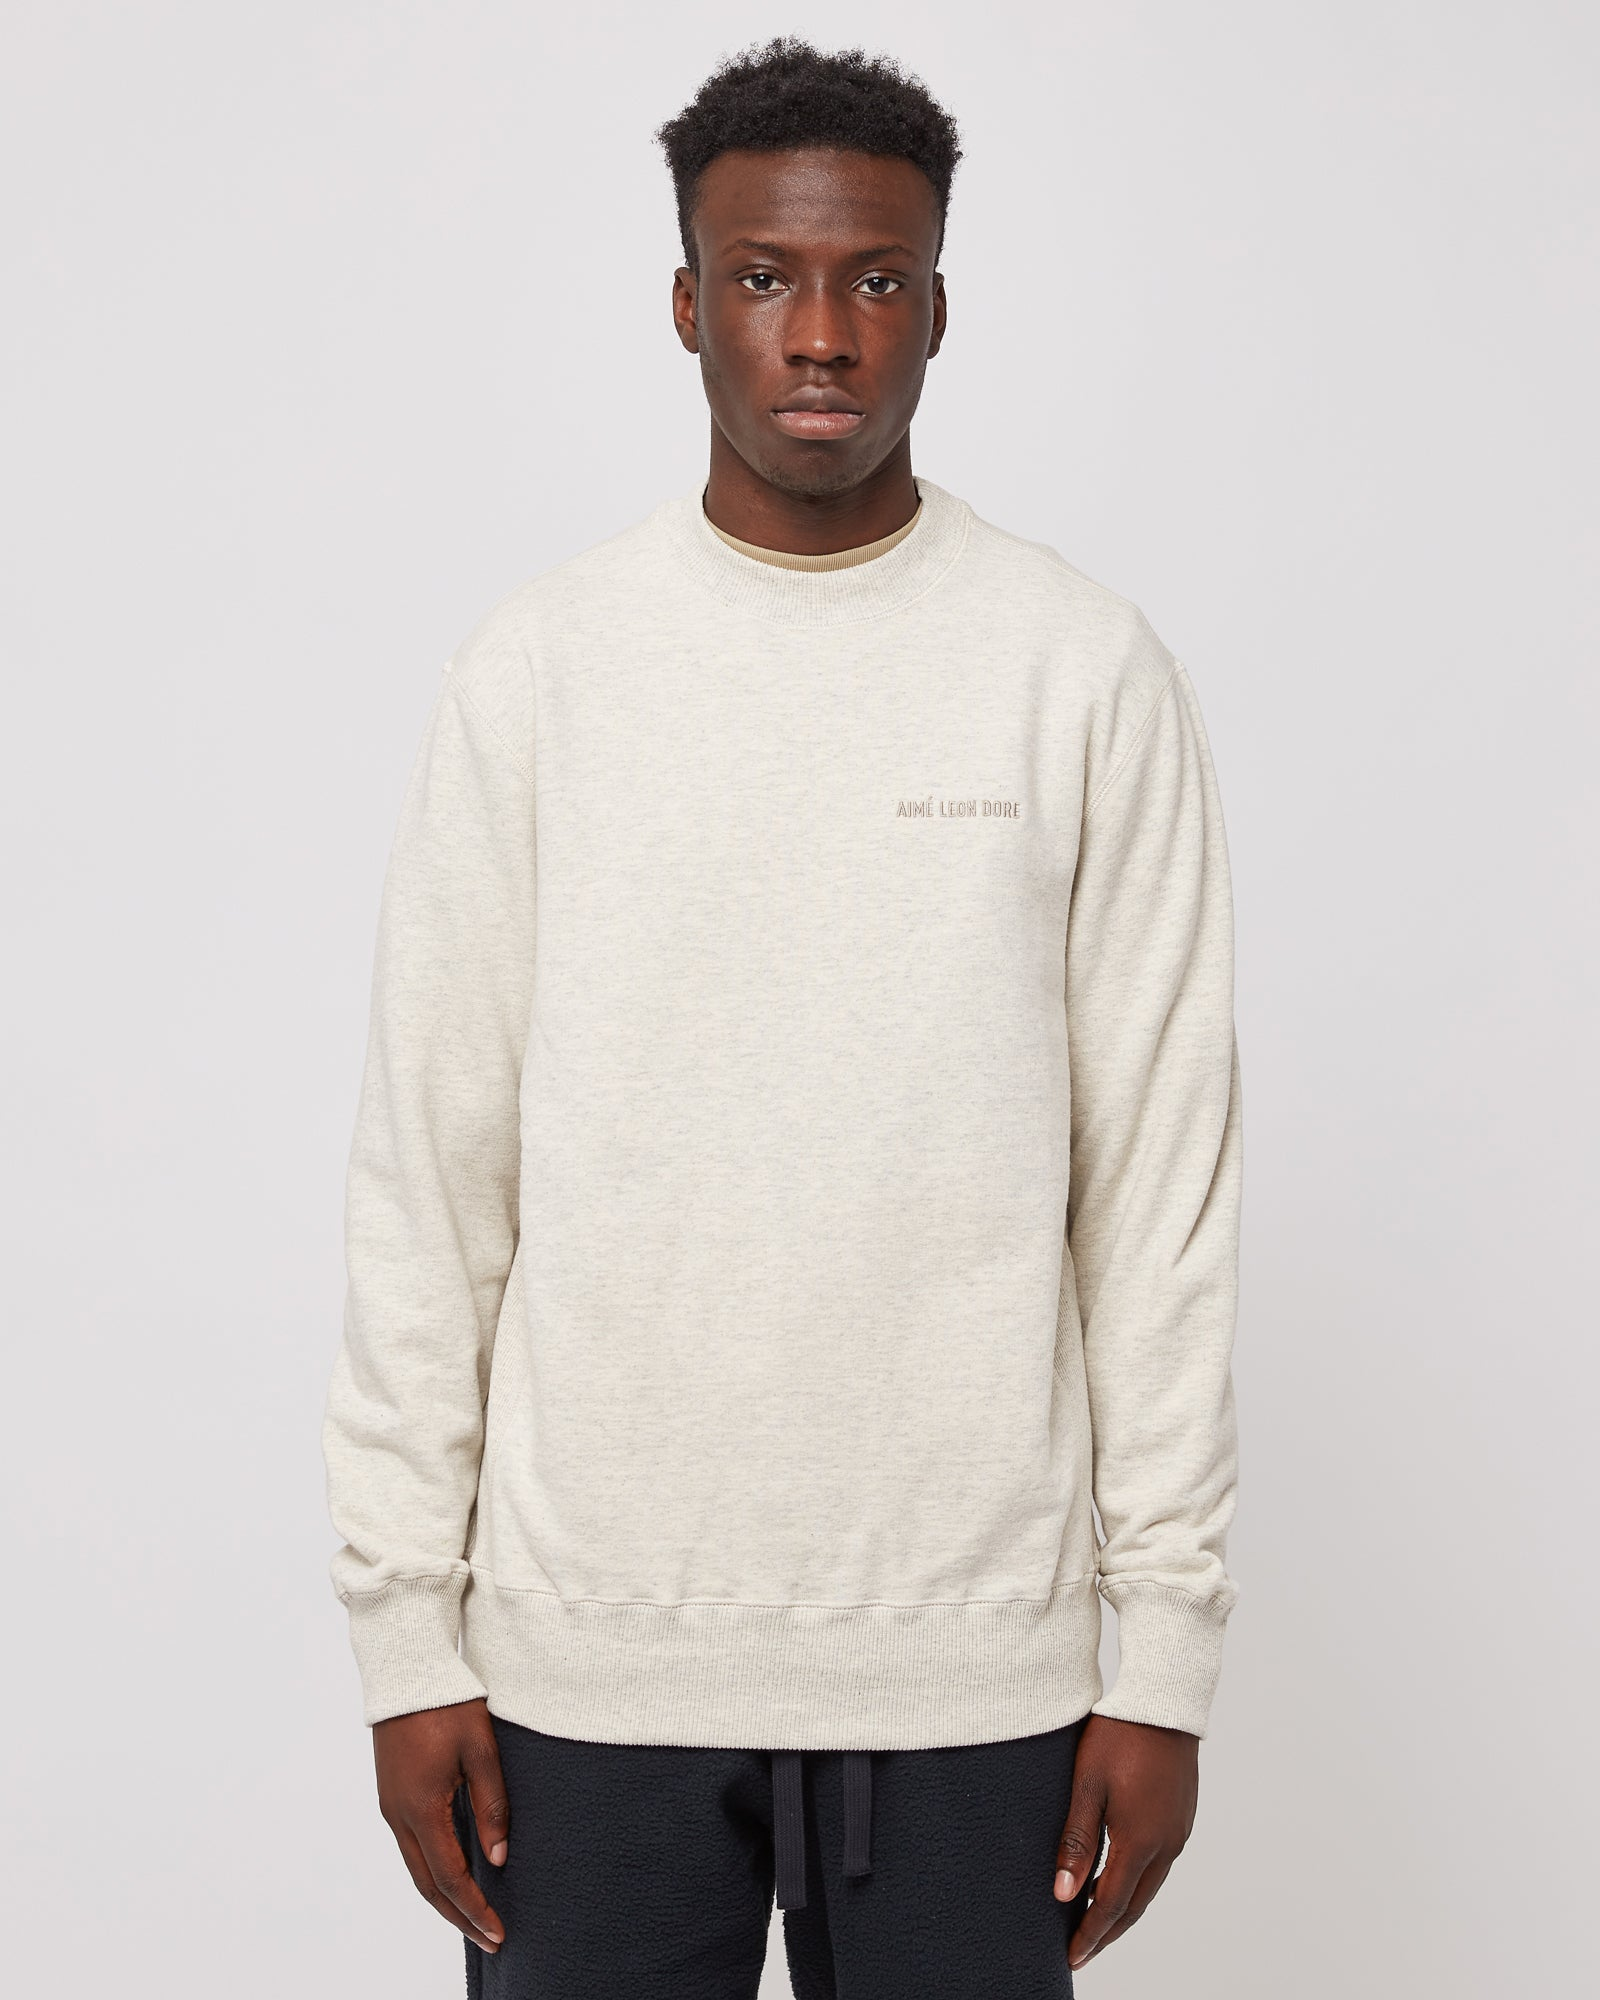 Uniform Crewneck in Oatmeal